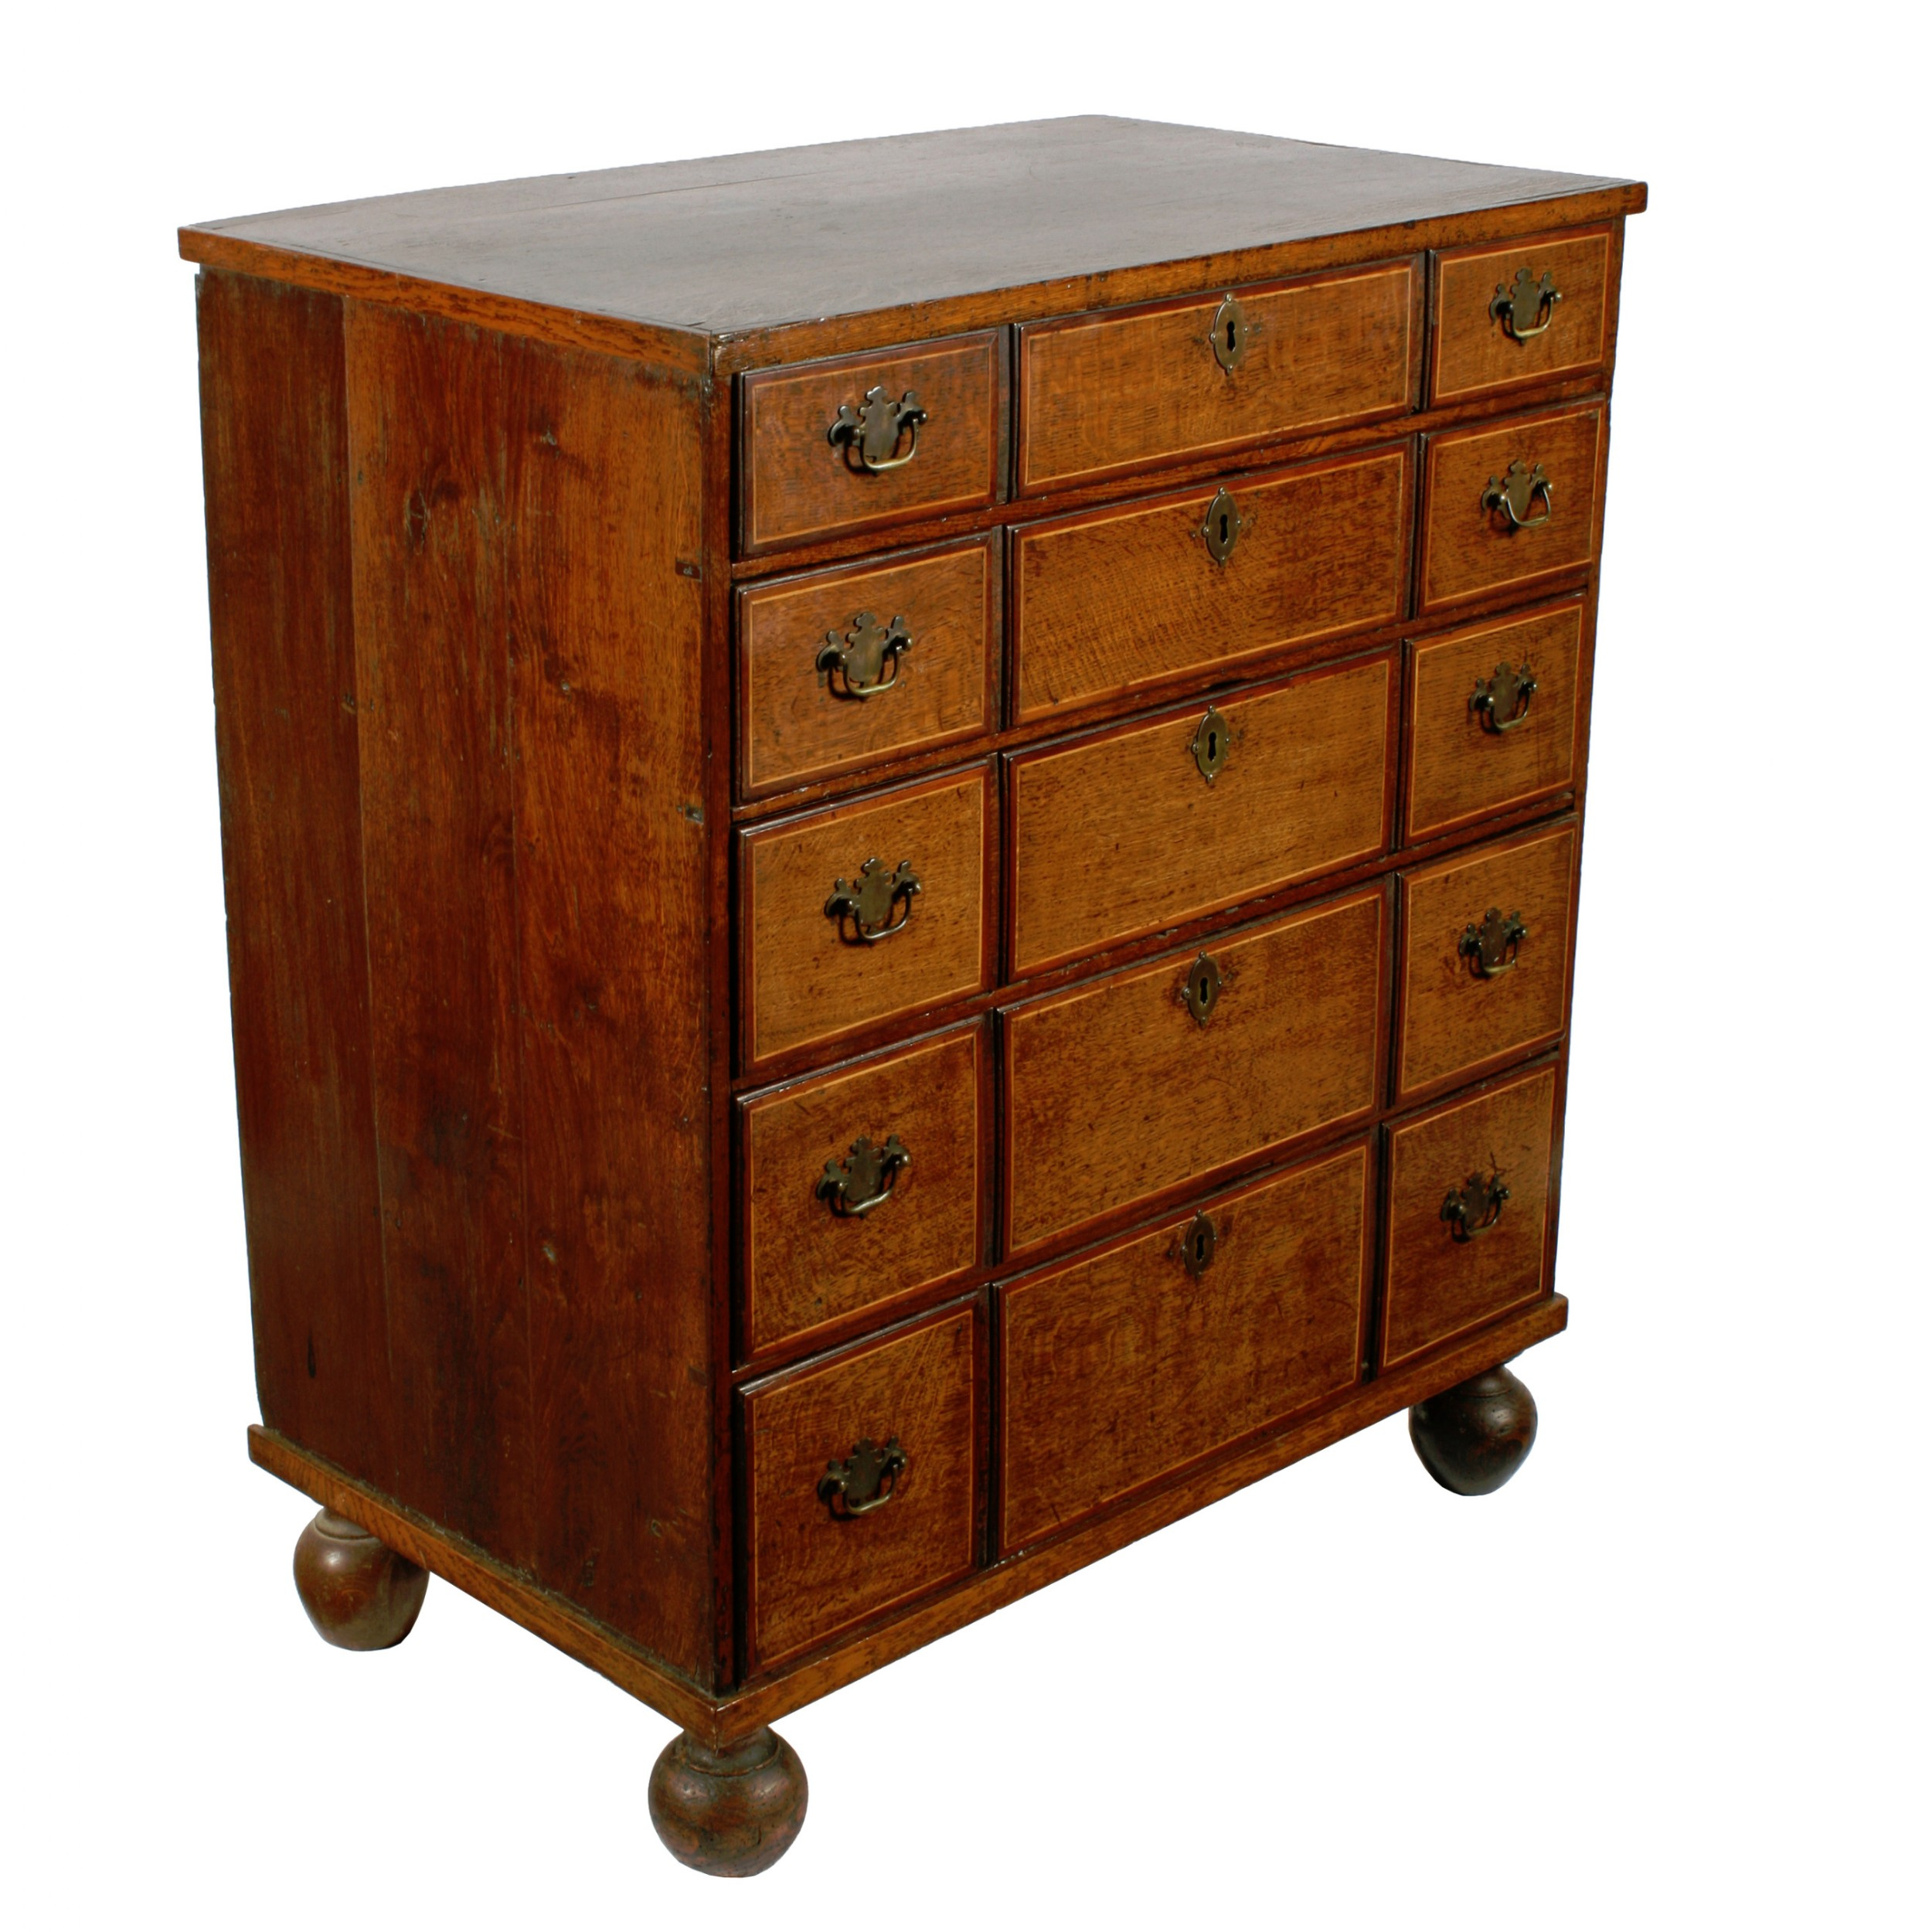 19th century oak chest of drawers